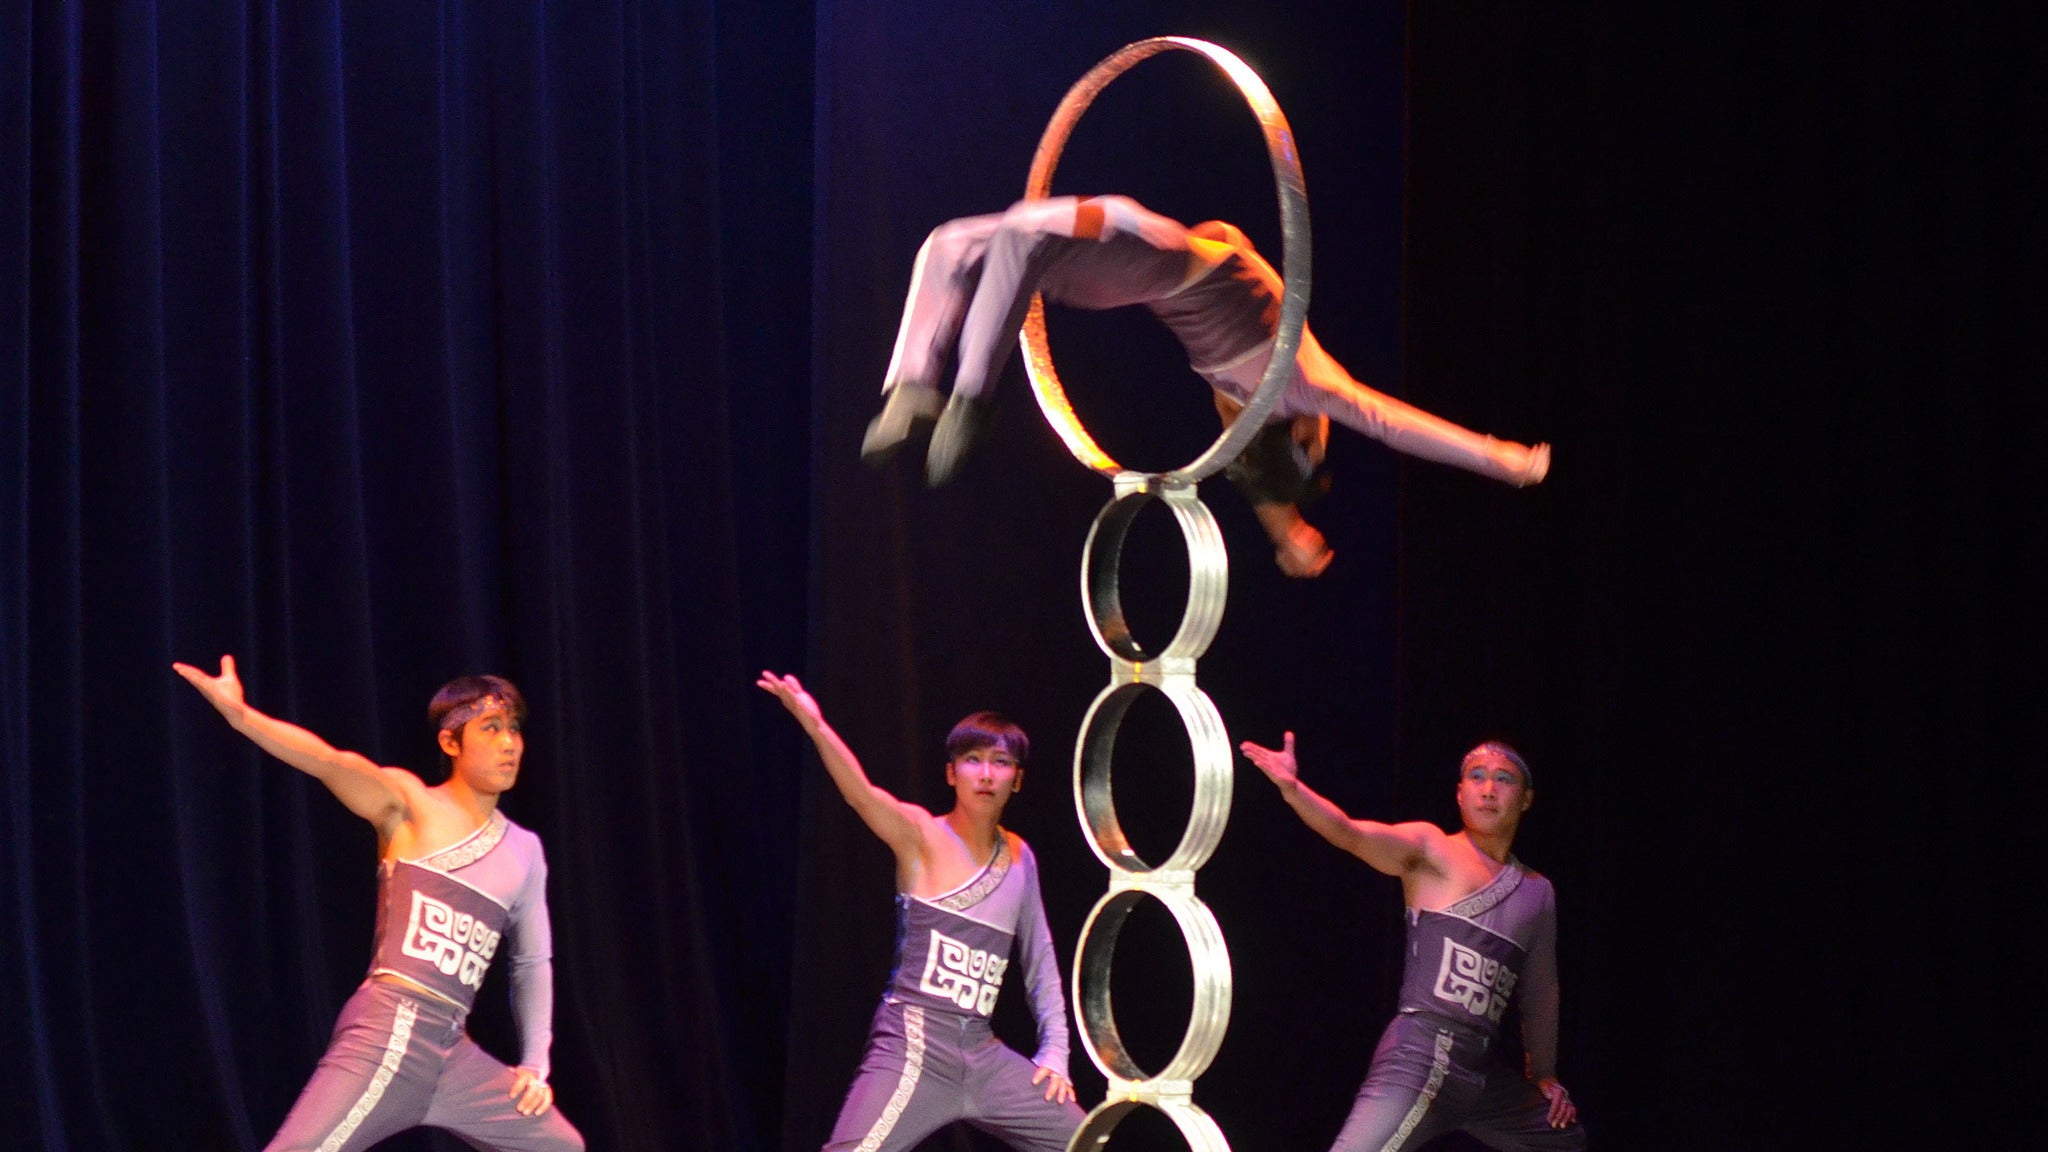 Golden Dragon Acrobats at Chandler Center for the Arts - Chandler, AZ 85224